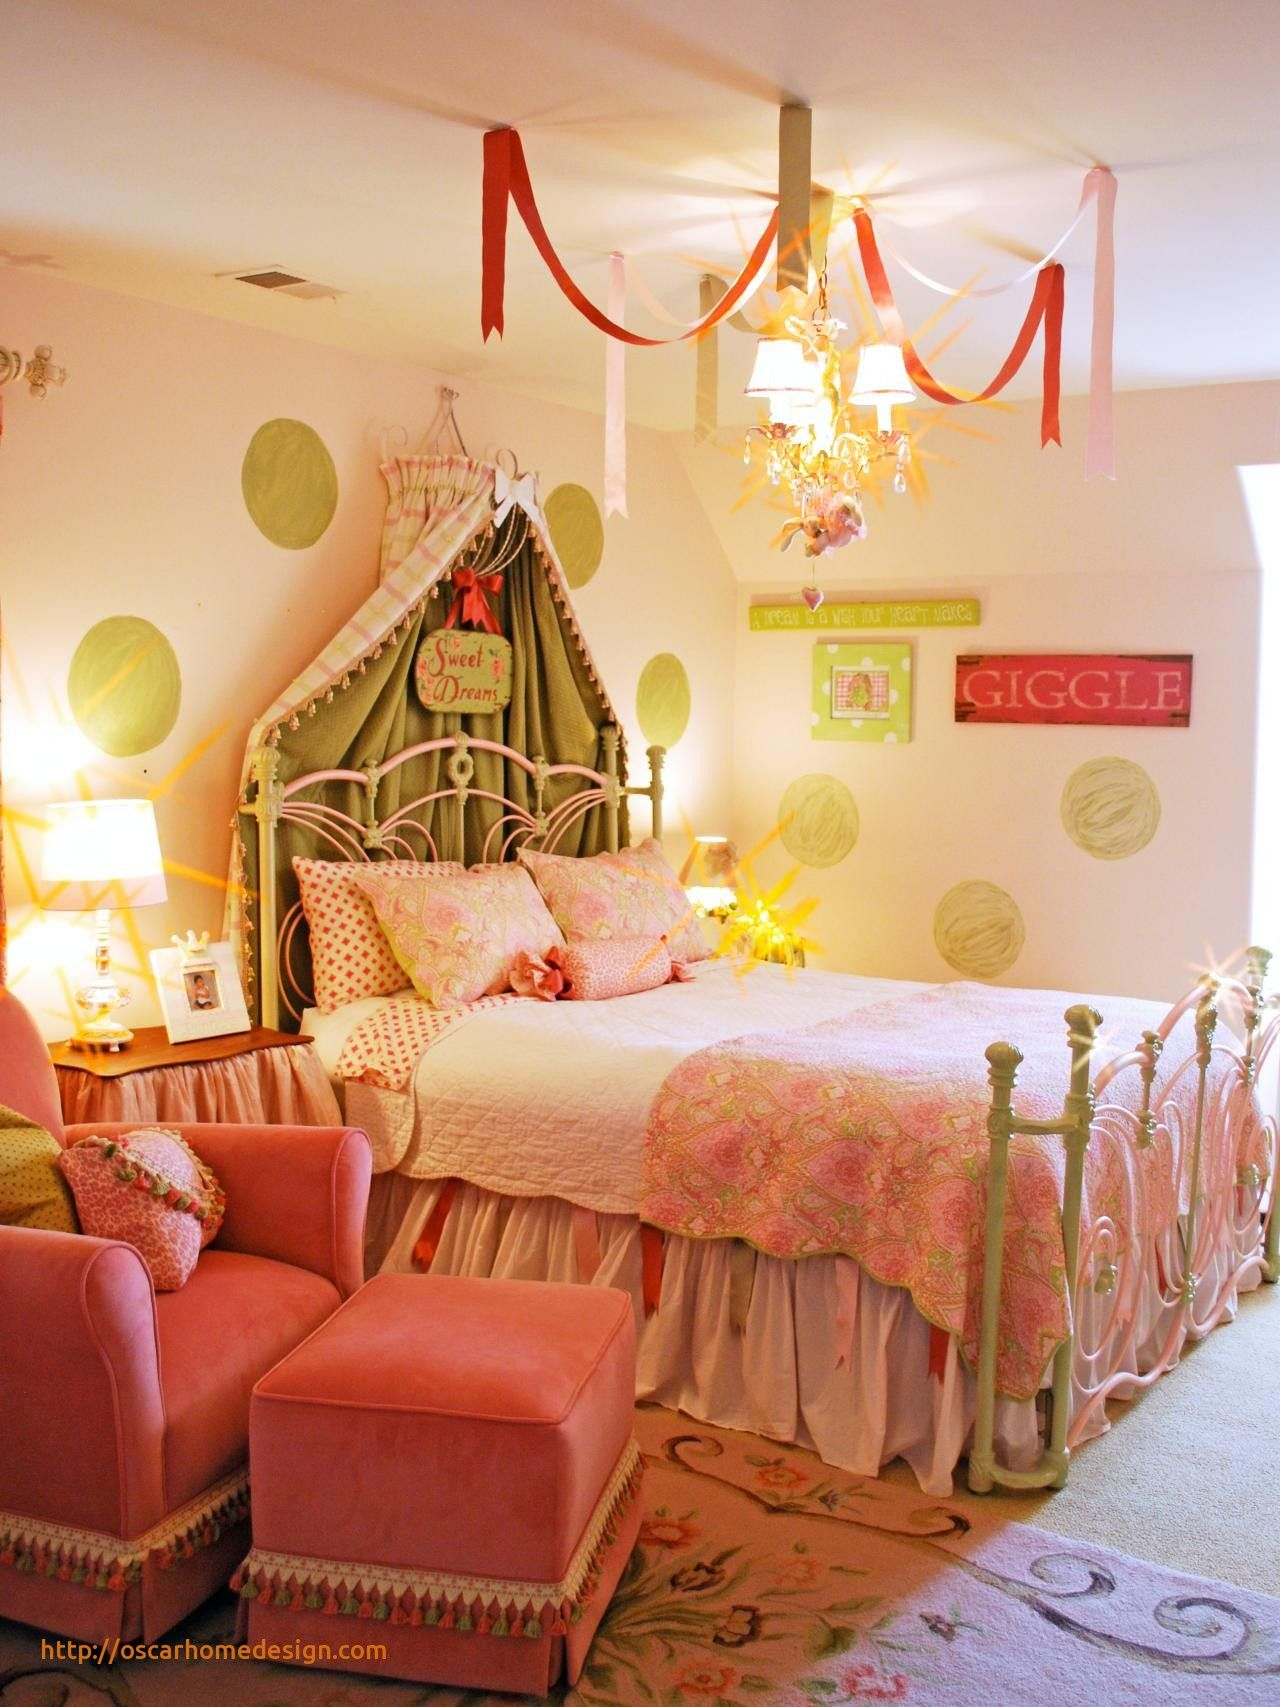 Great crown wall decor gallery the wall art decorations bedroom